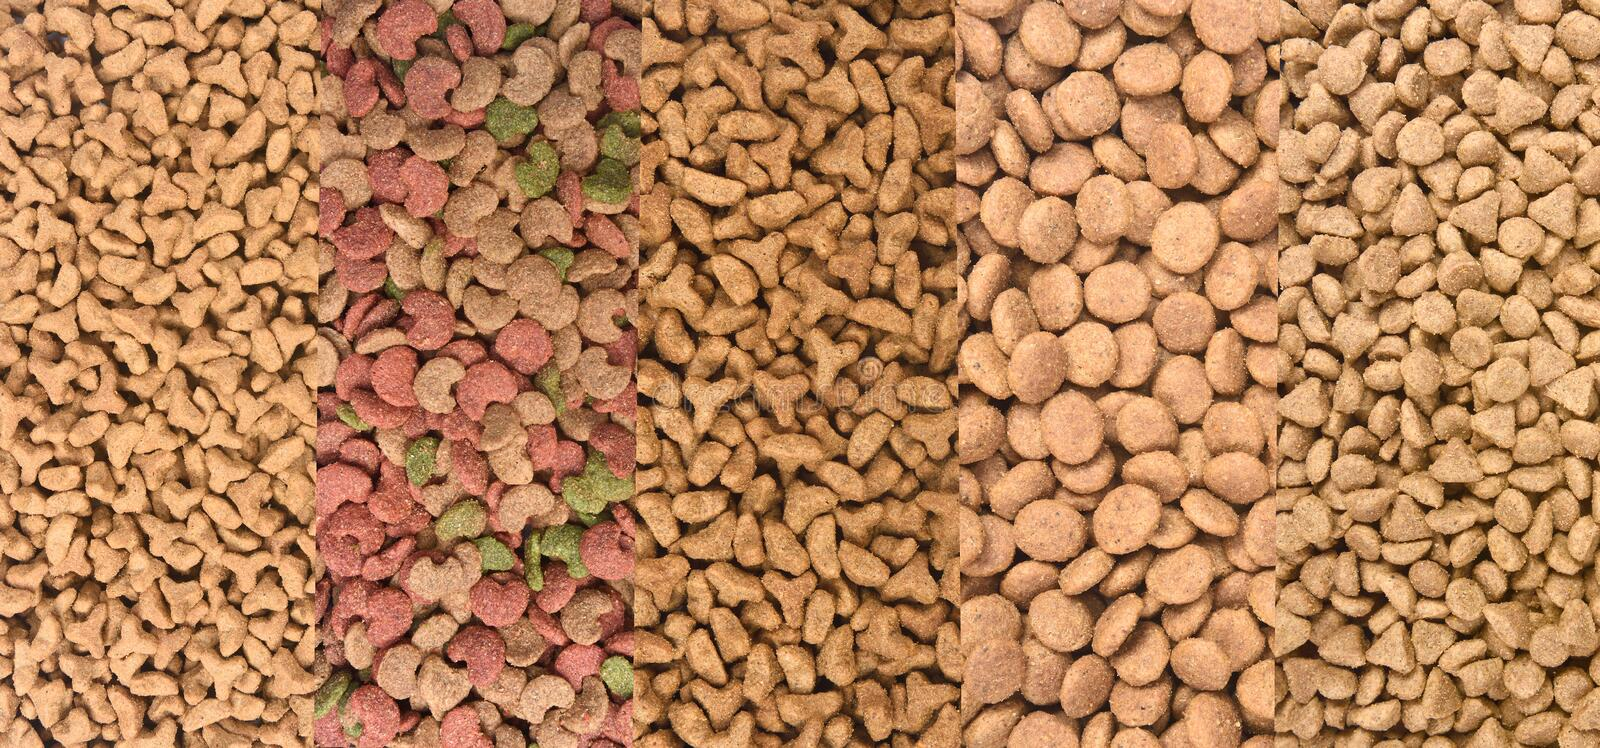 Different types of cat food.  royalty free stock photos